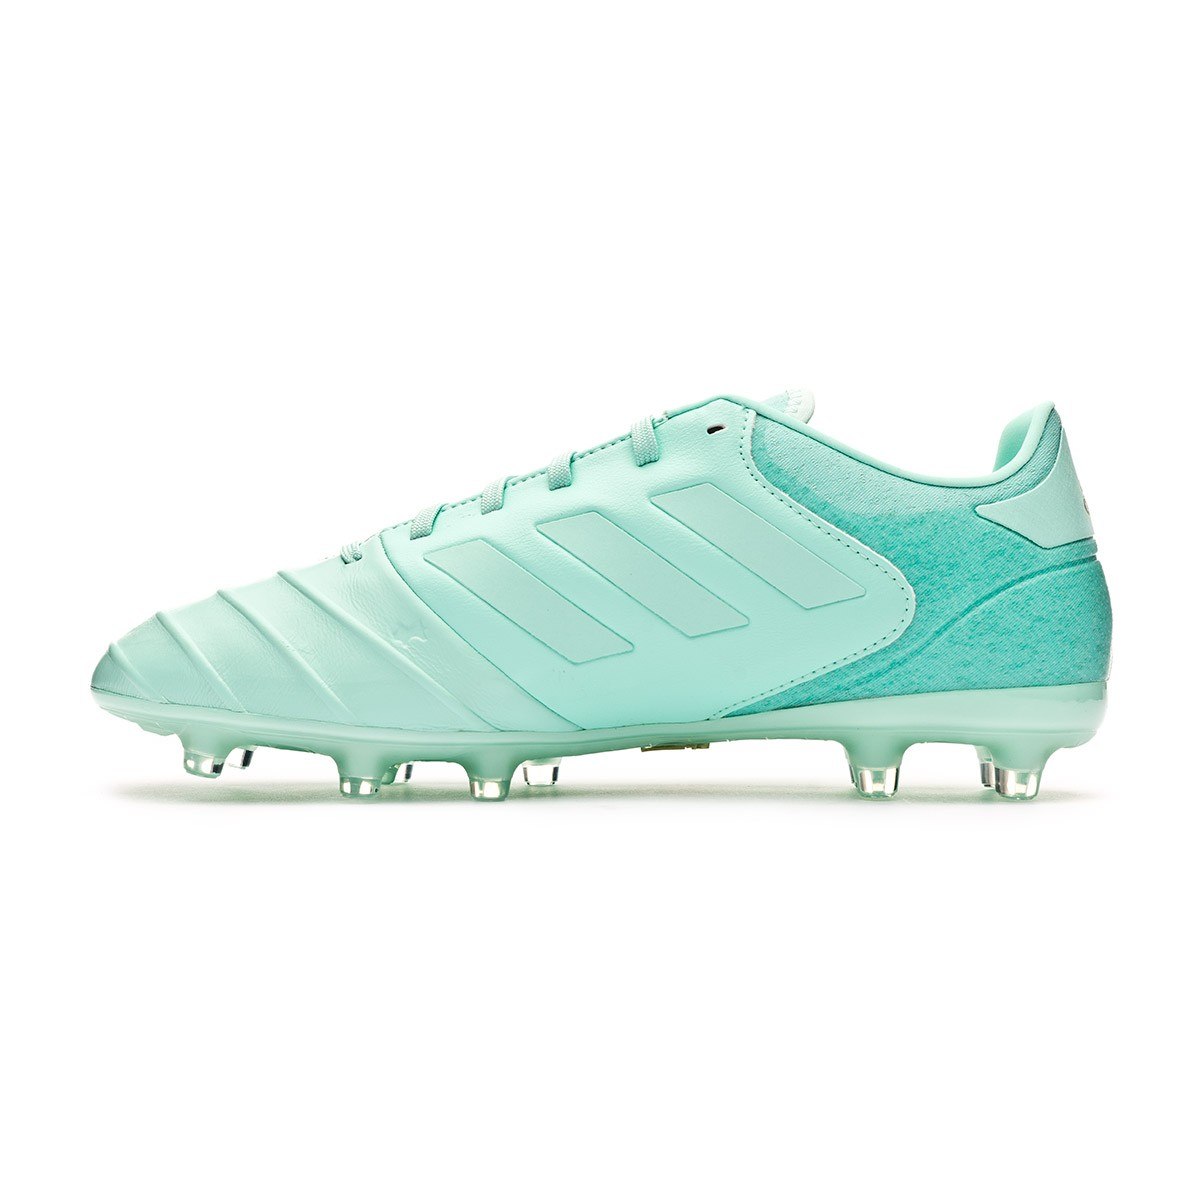 the best attitude 01709 1bca1 Boot adidas Copa 18.2 FG Clear mint-Clear mint-Gold metallic - Football  store Fútbol Emotion